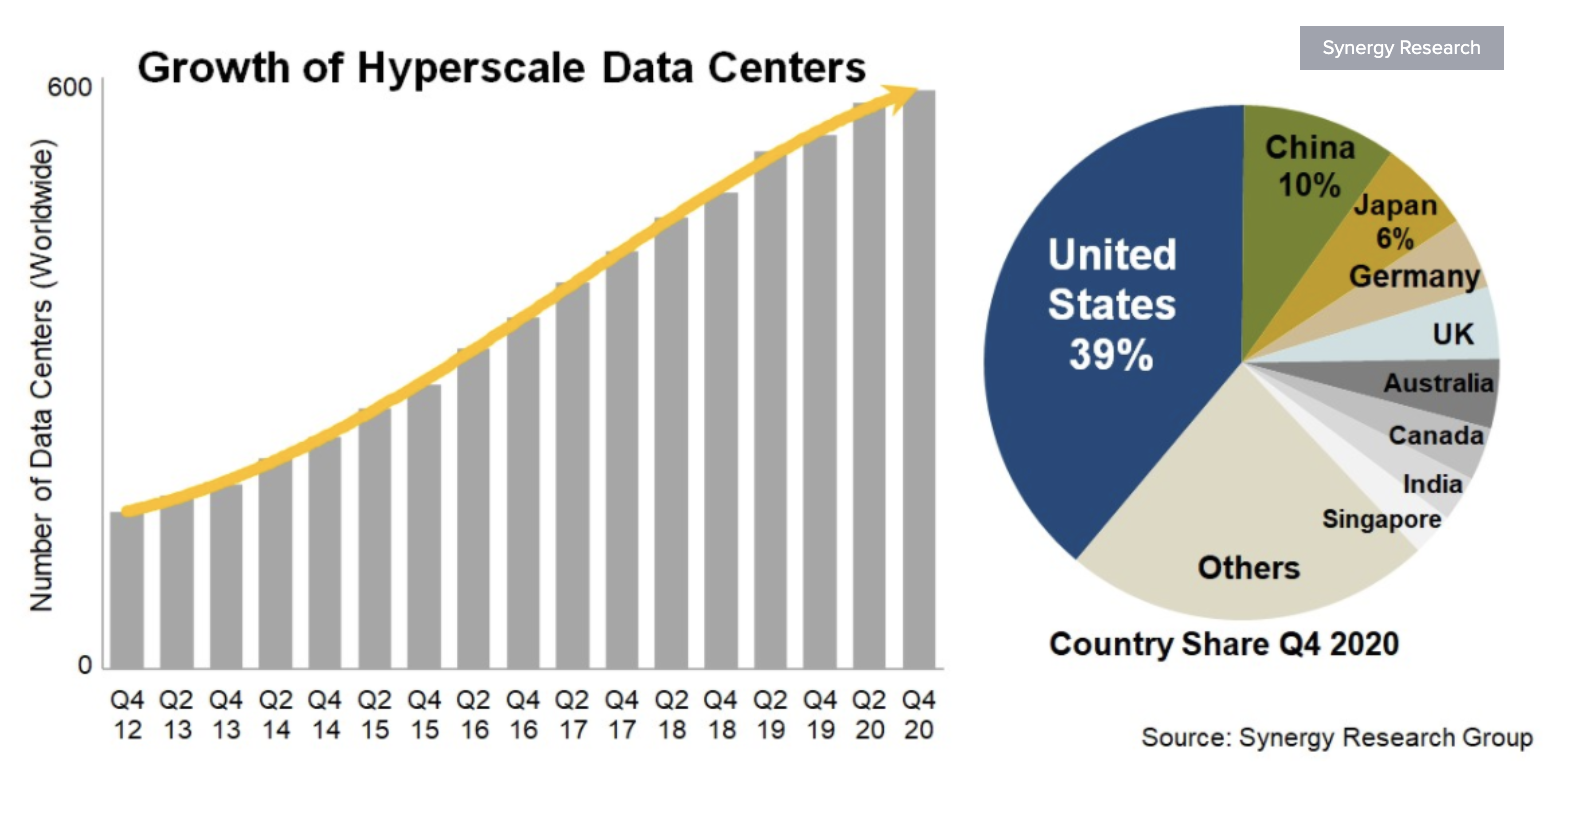 Infographic showing the growth of hyperscale data centers.